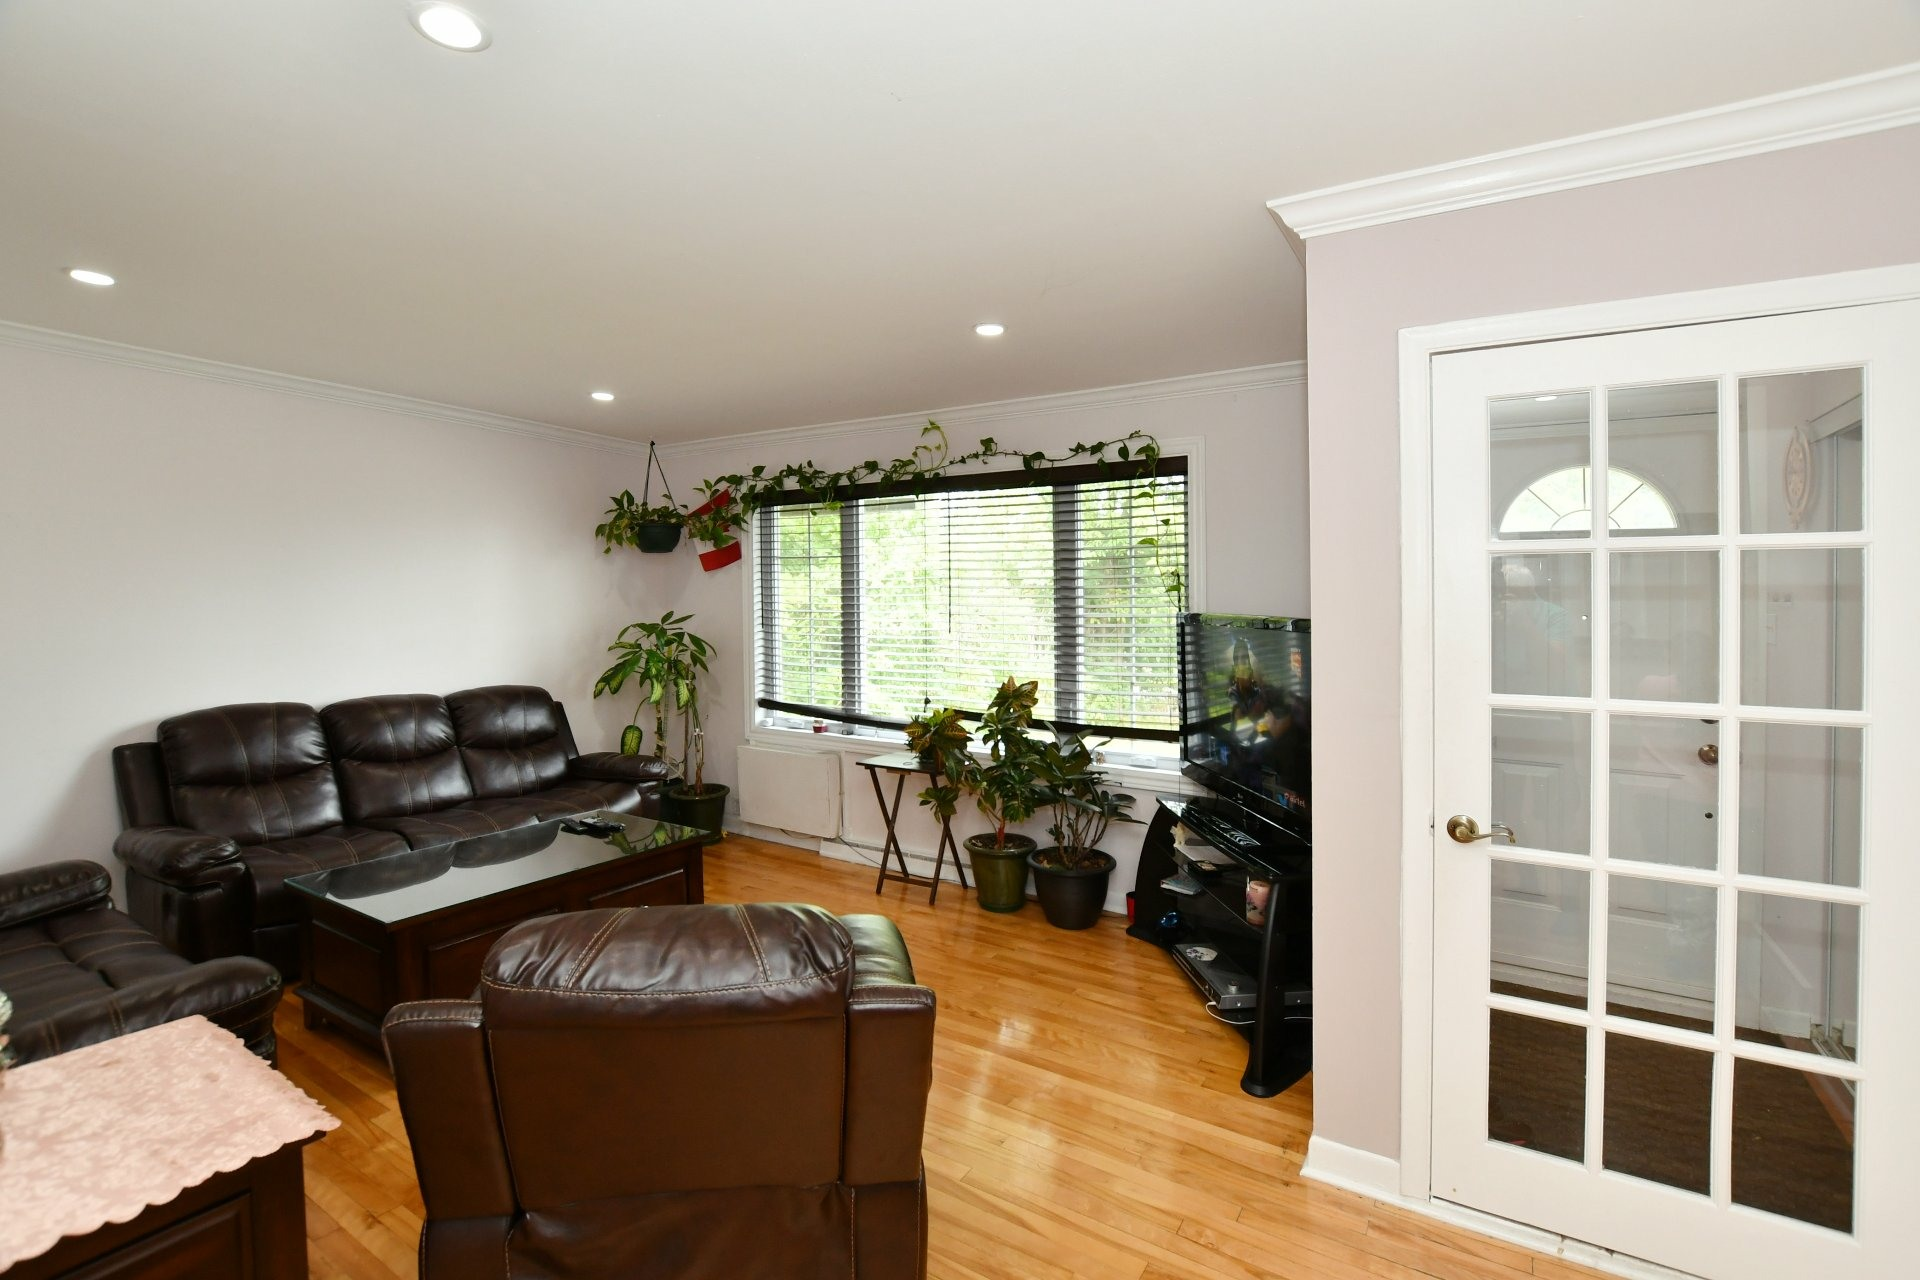 image 7 - House For sale Laval Chomedey  - 7 rooms